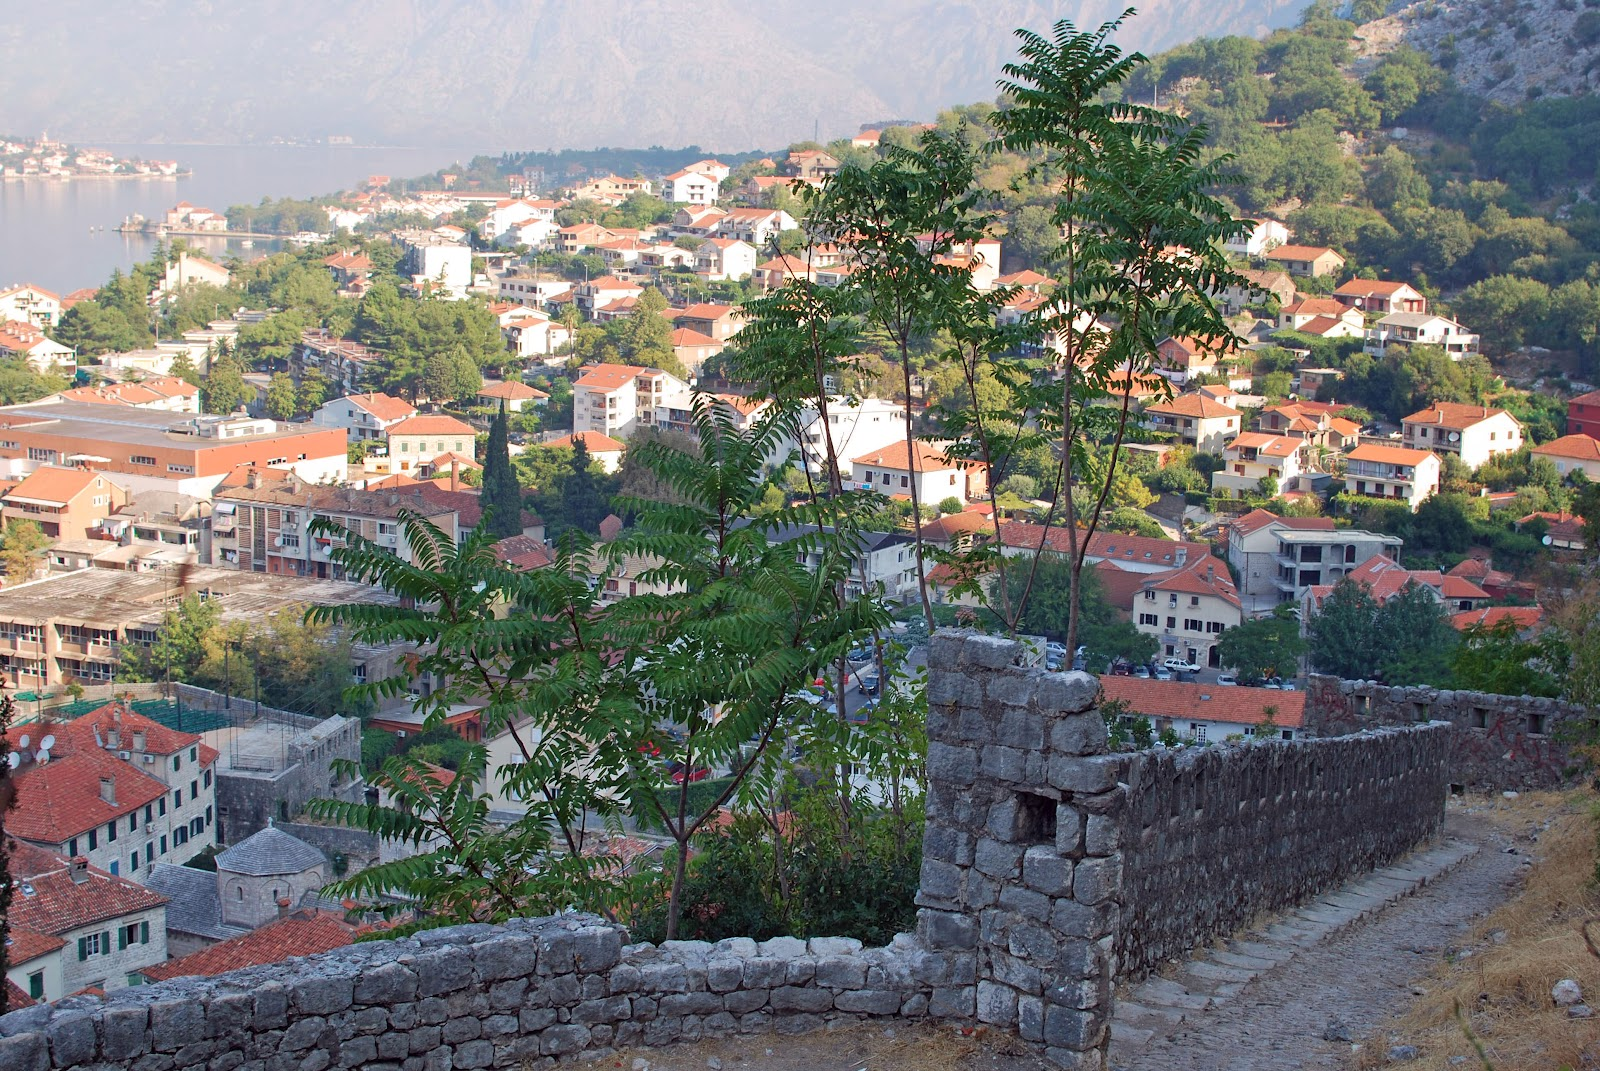 The view of Kotor from midway up the Fortifications